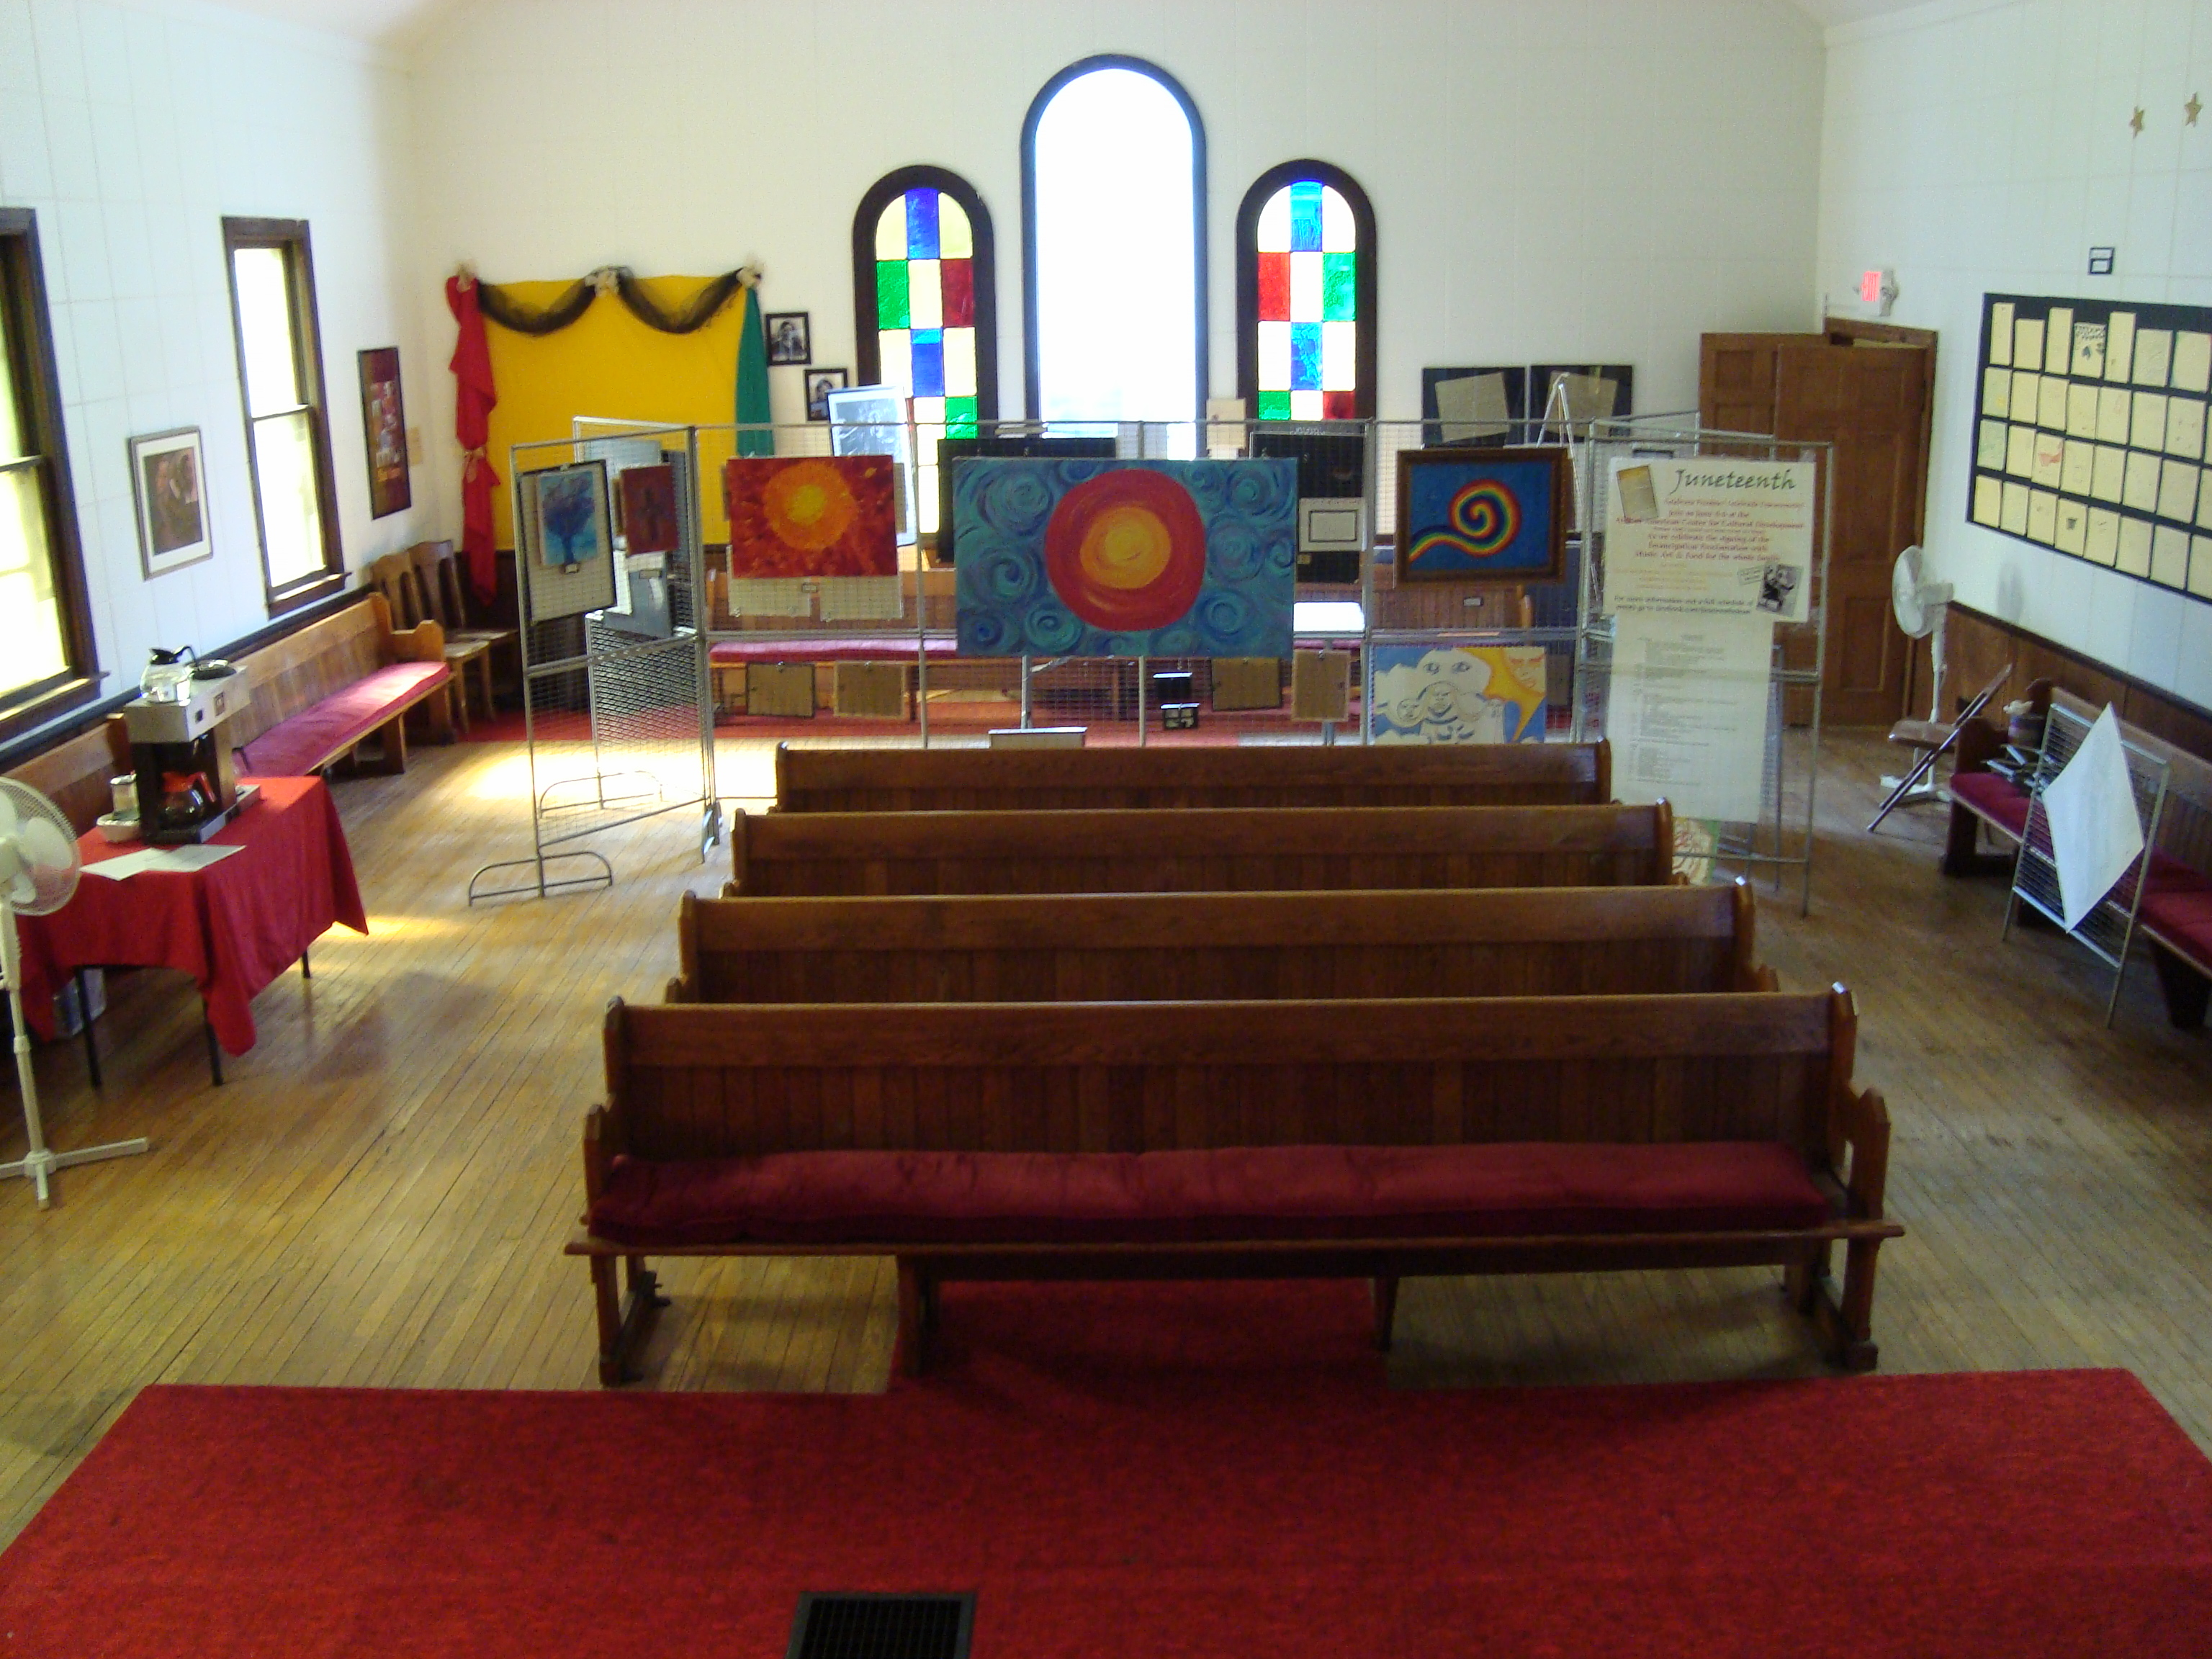 The interior space of the center while it was at the church.